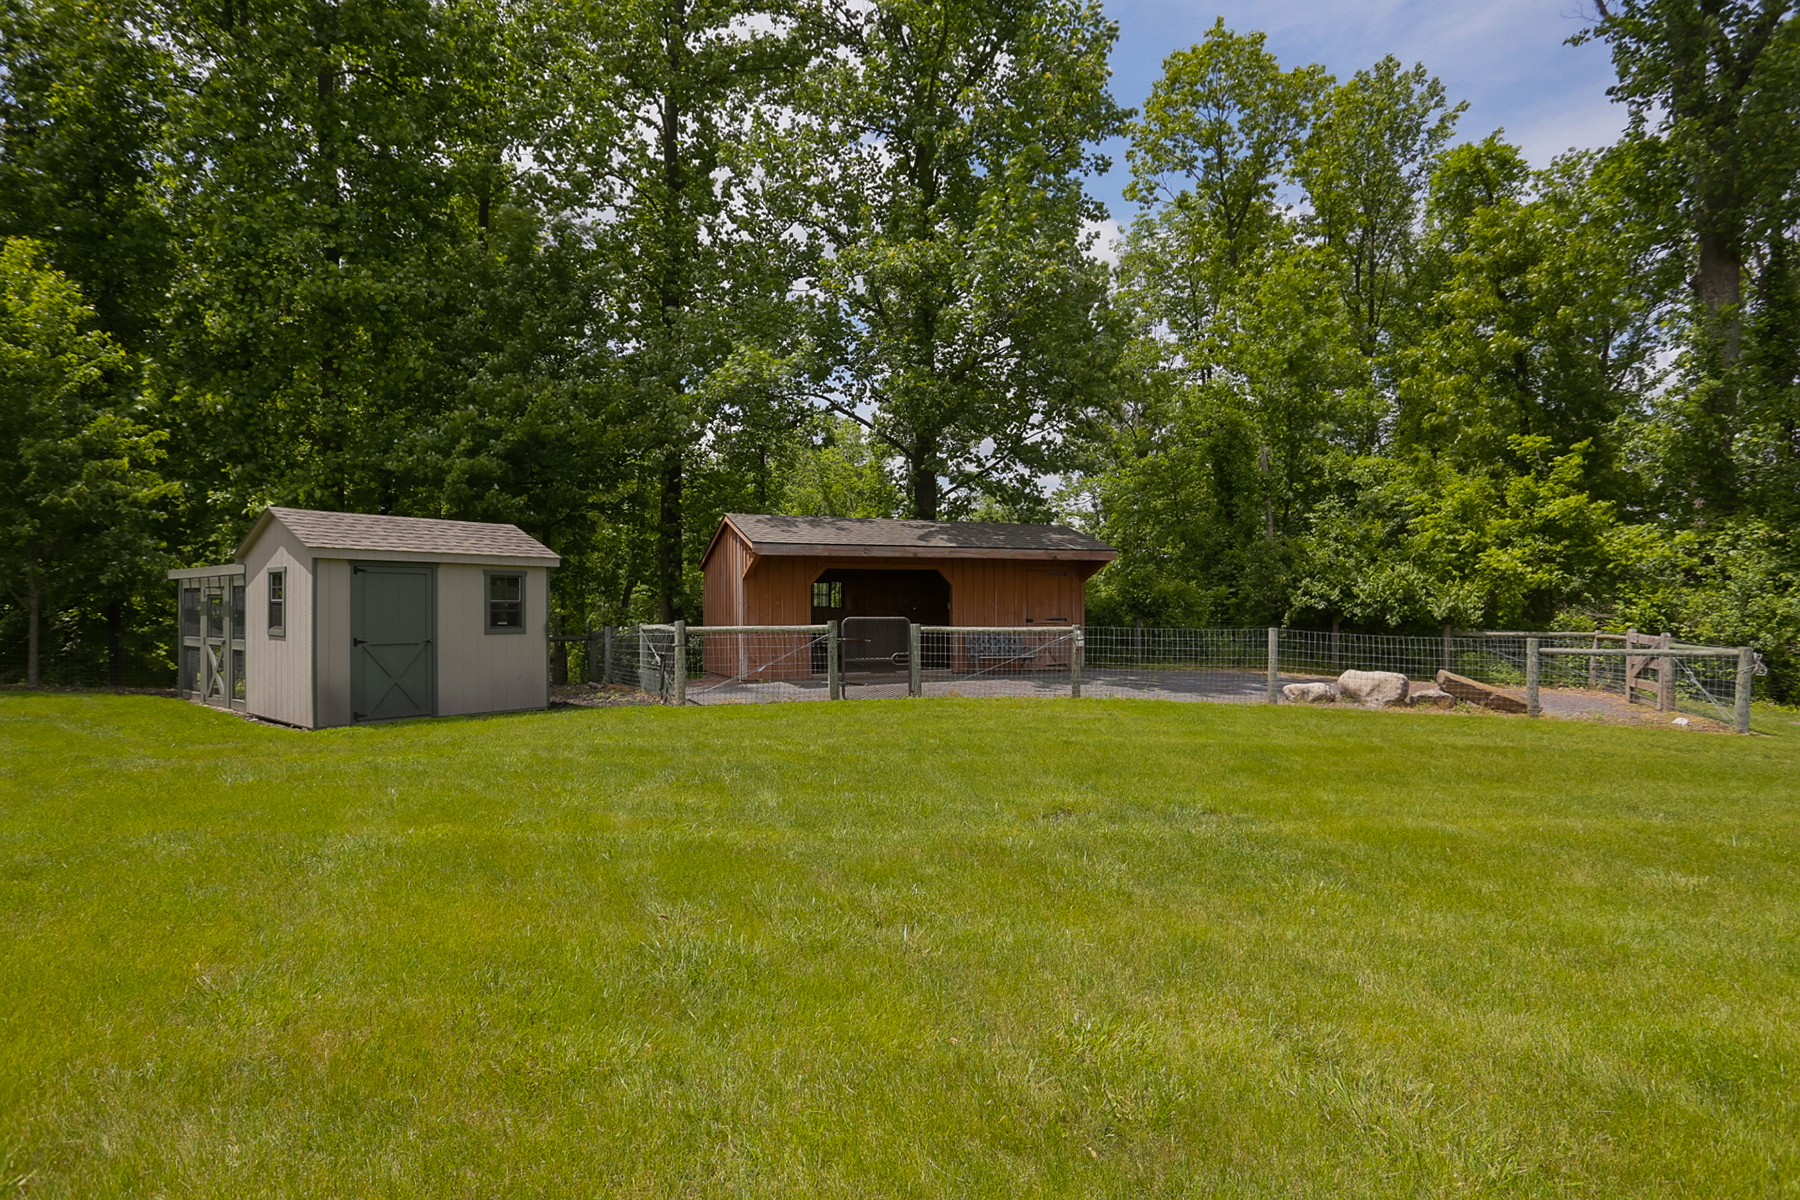 Additional photo for property listing at 479 Imperial Drive  Mohnton, Pennsylvania 19540 United States